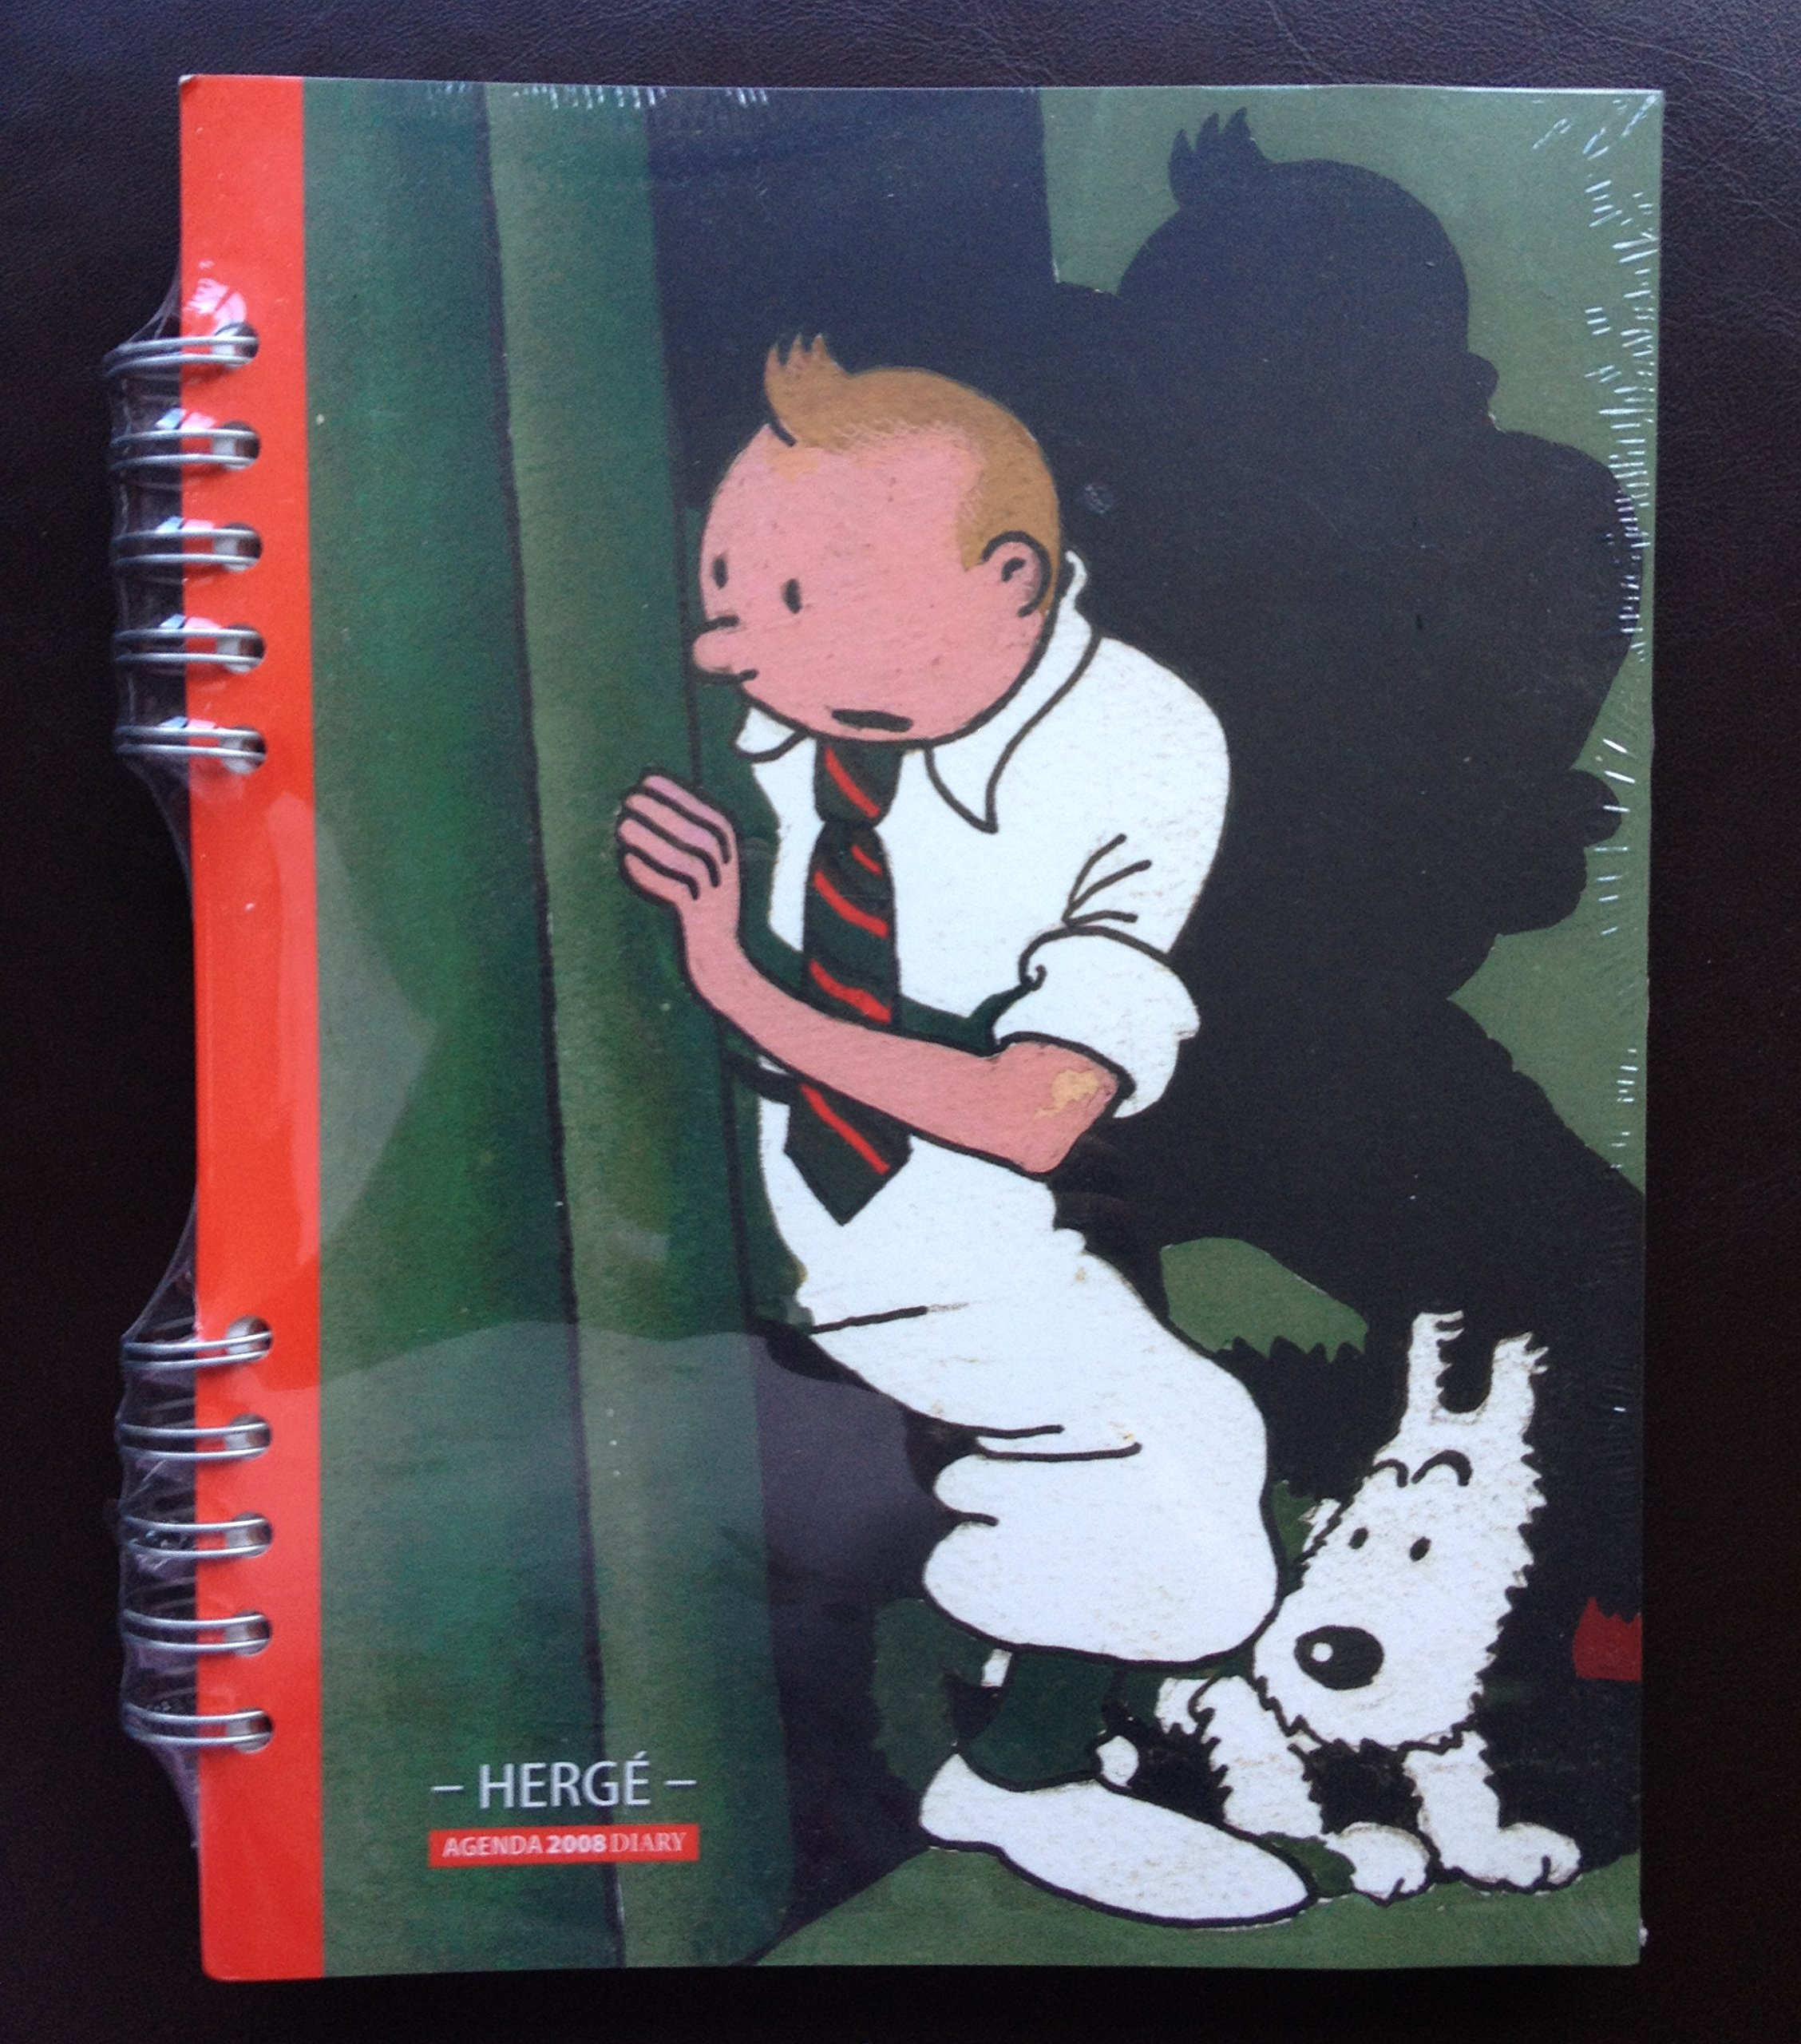 AGENDA TINTIN 2008: Amazon.es: HERGE, EDITIONS MOULINSART ...